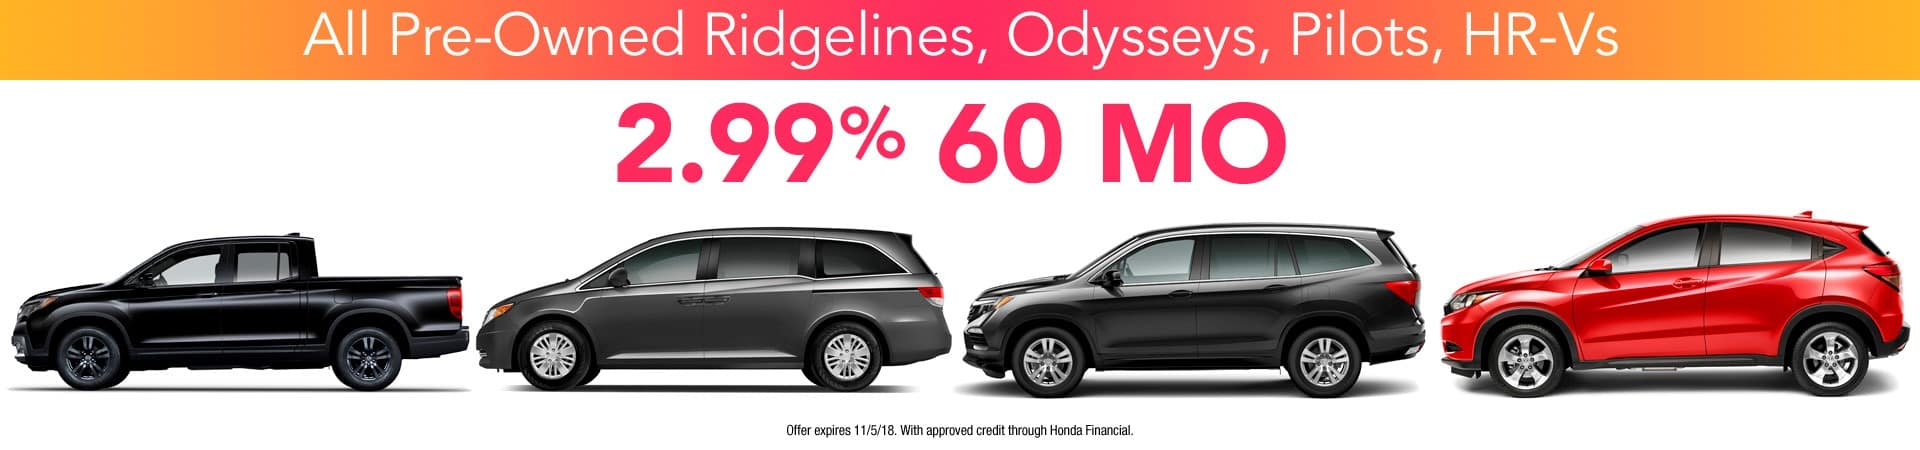 Honda certified pre-owned specials.